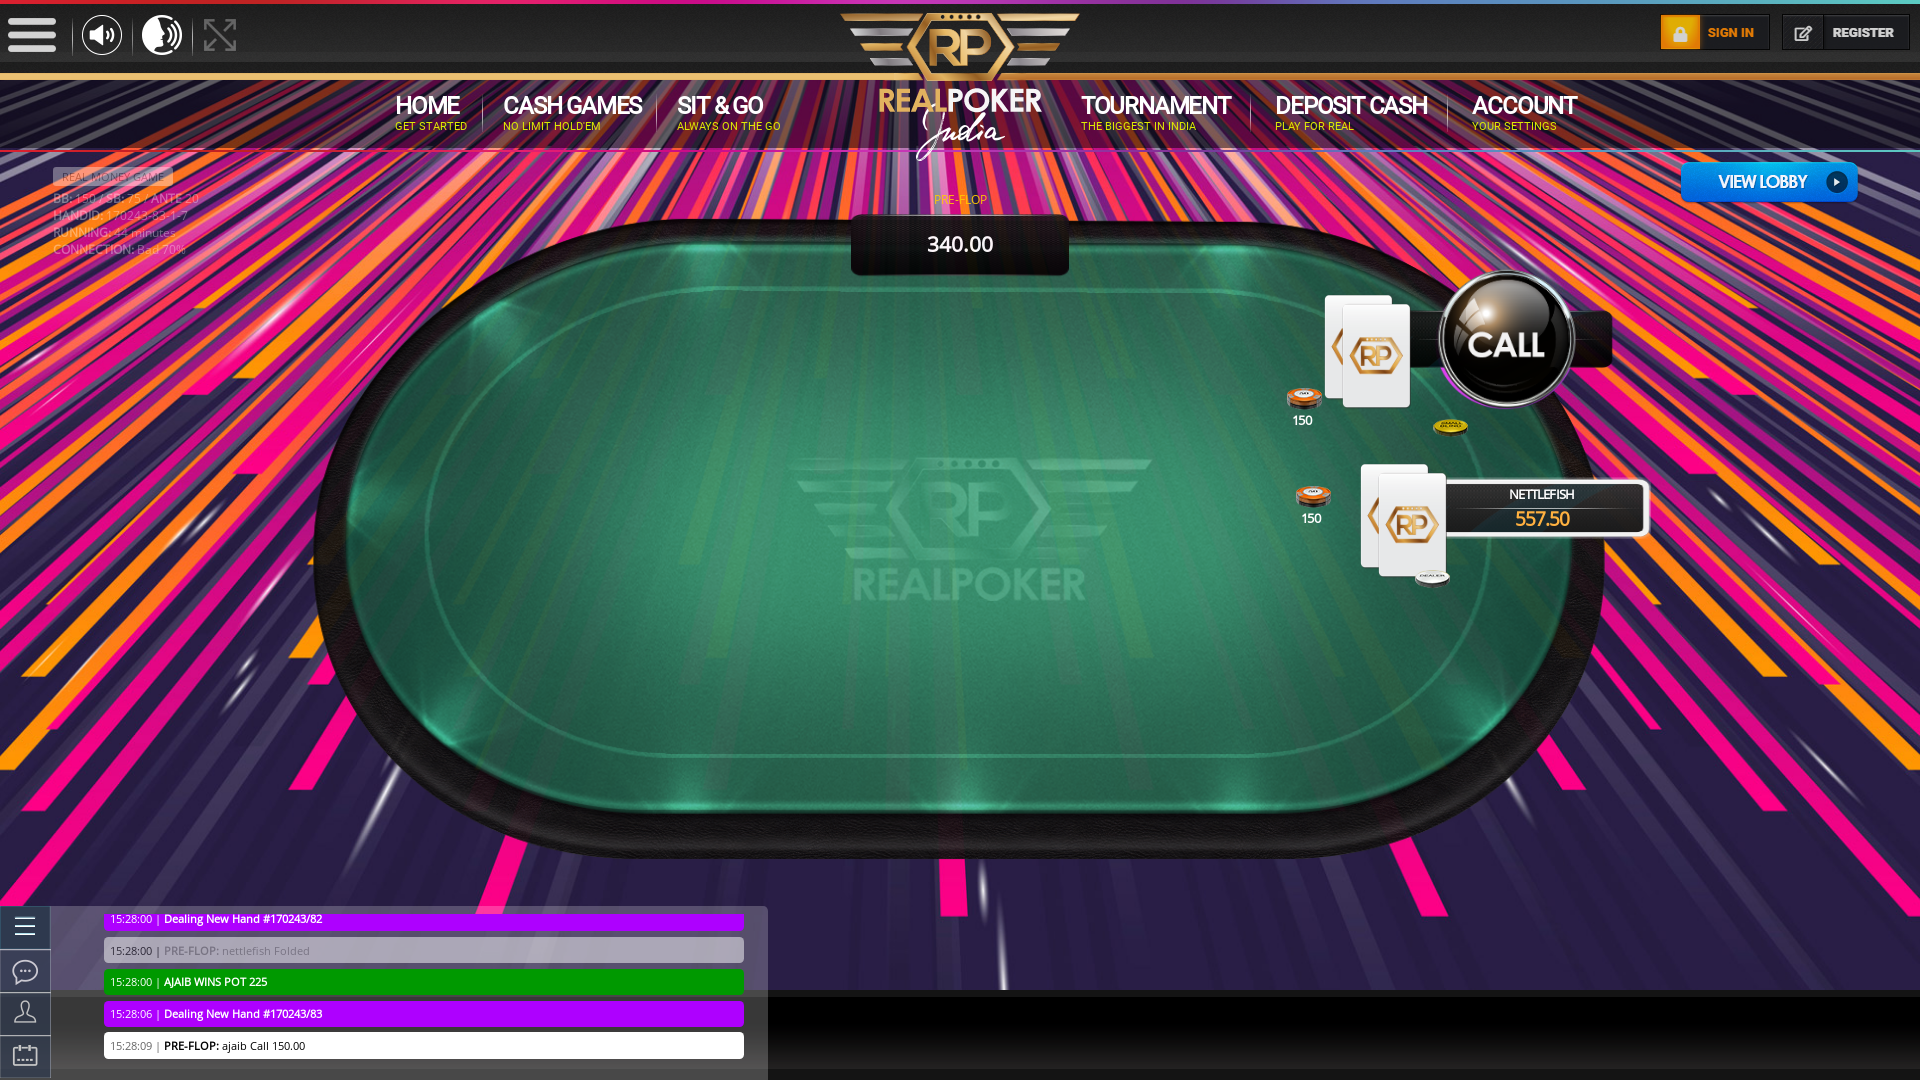 Indian online poker on a 10 player table in the 43rd minute match up